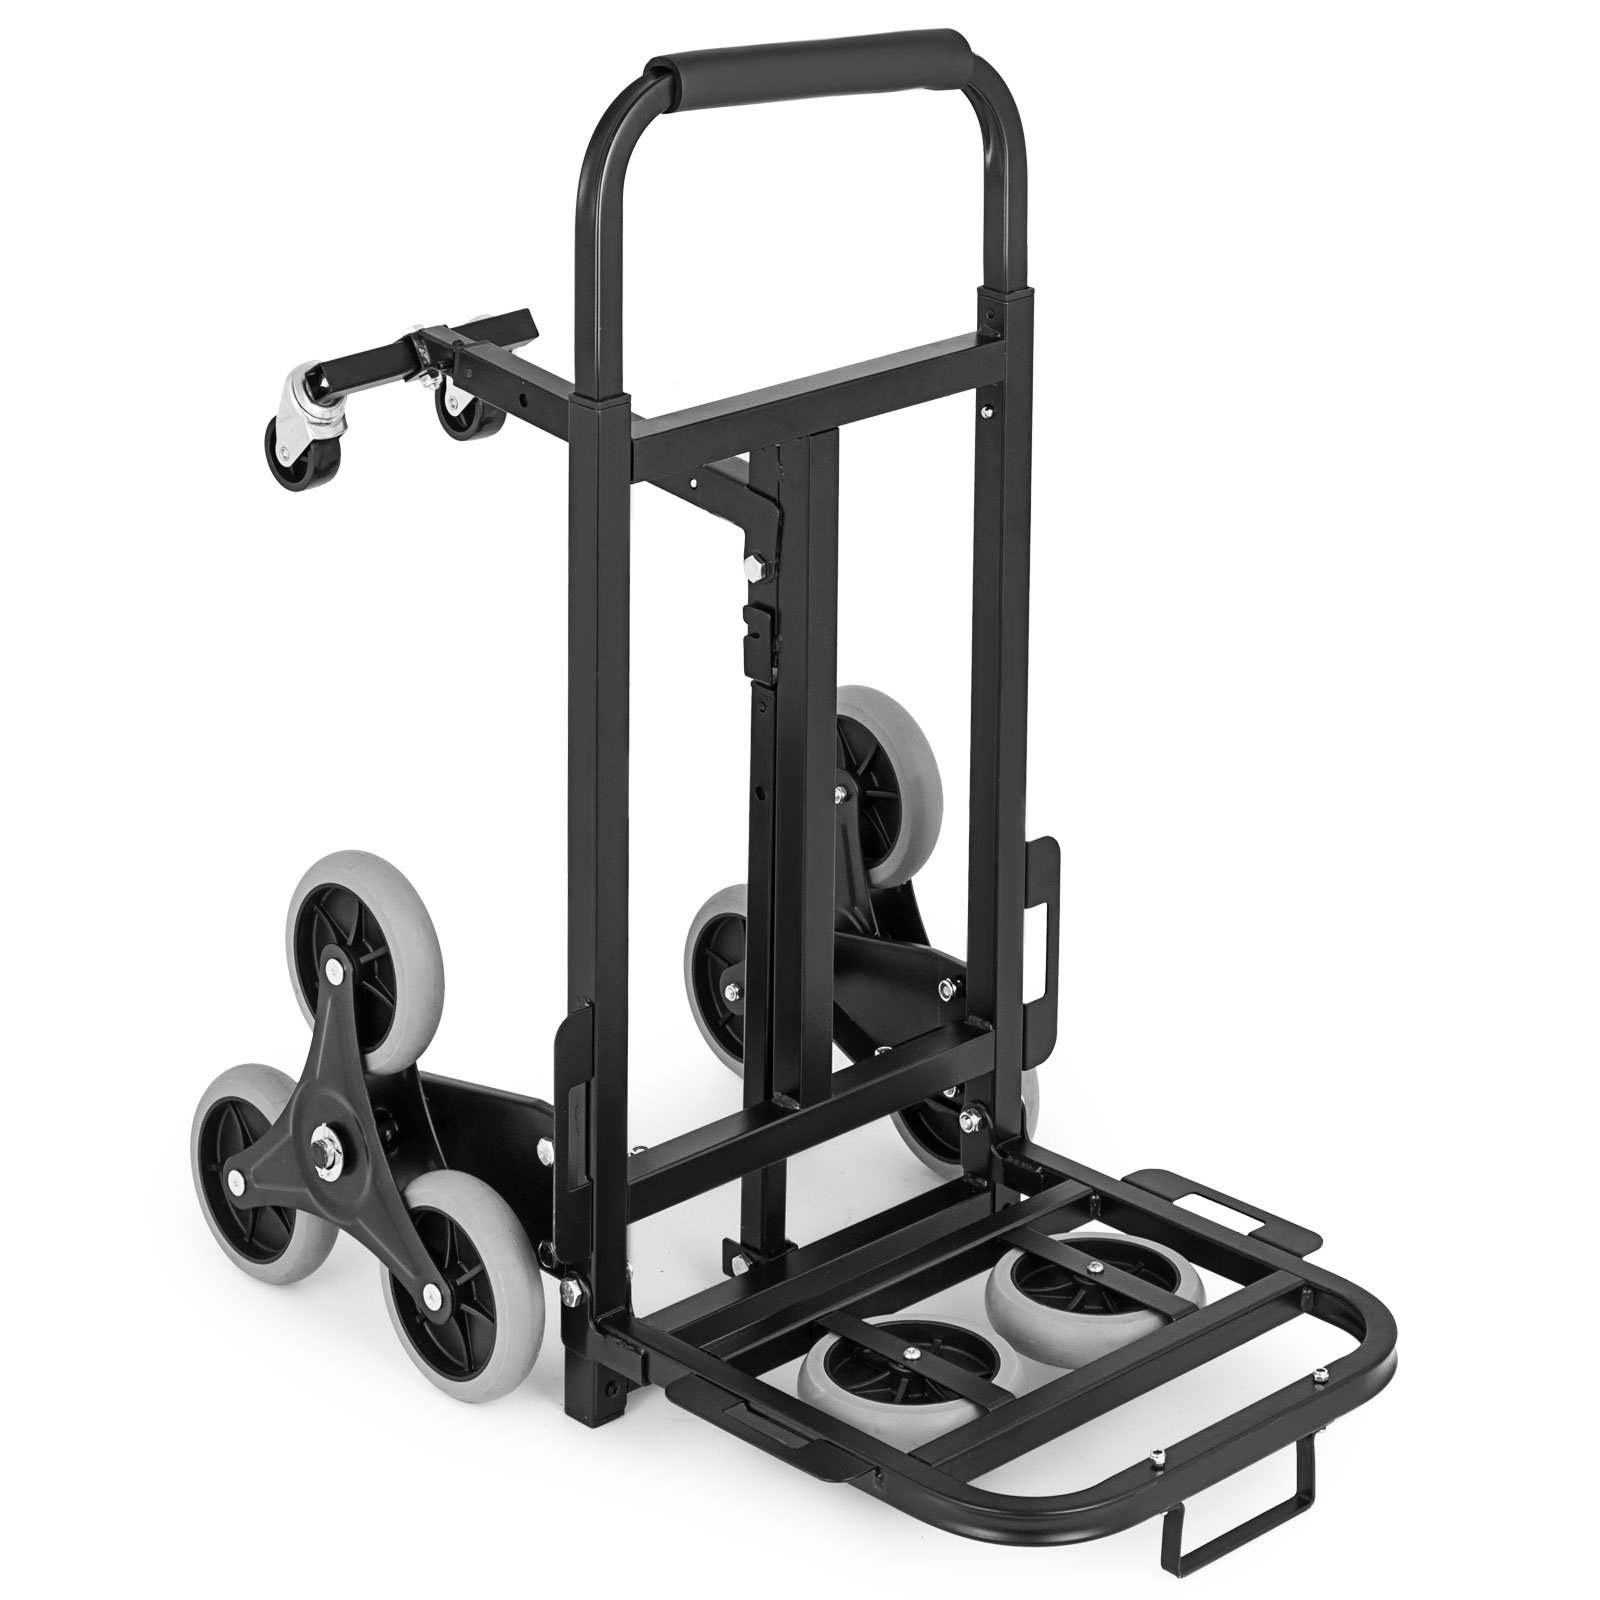 VEVOR Stair Climbing Cart 45 inches 330 lbs Capacity Portable Hand Truck Adjustable Handle Folding Hand Truck Stair Climber with 2 Backup wheels and Auxiliary wheels